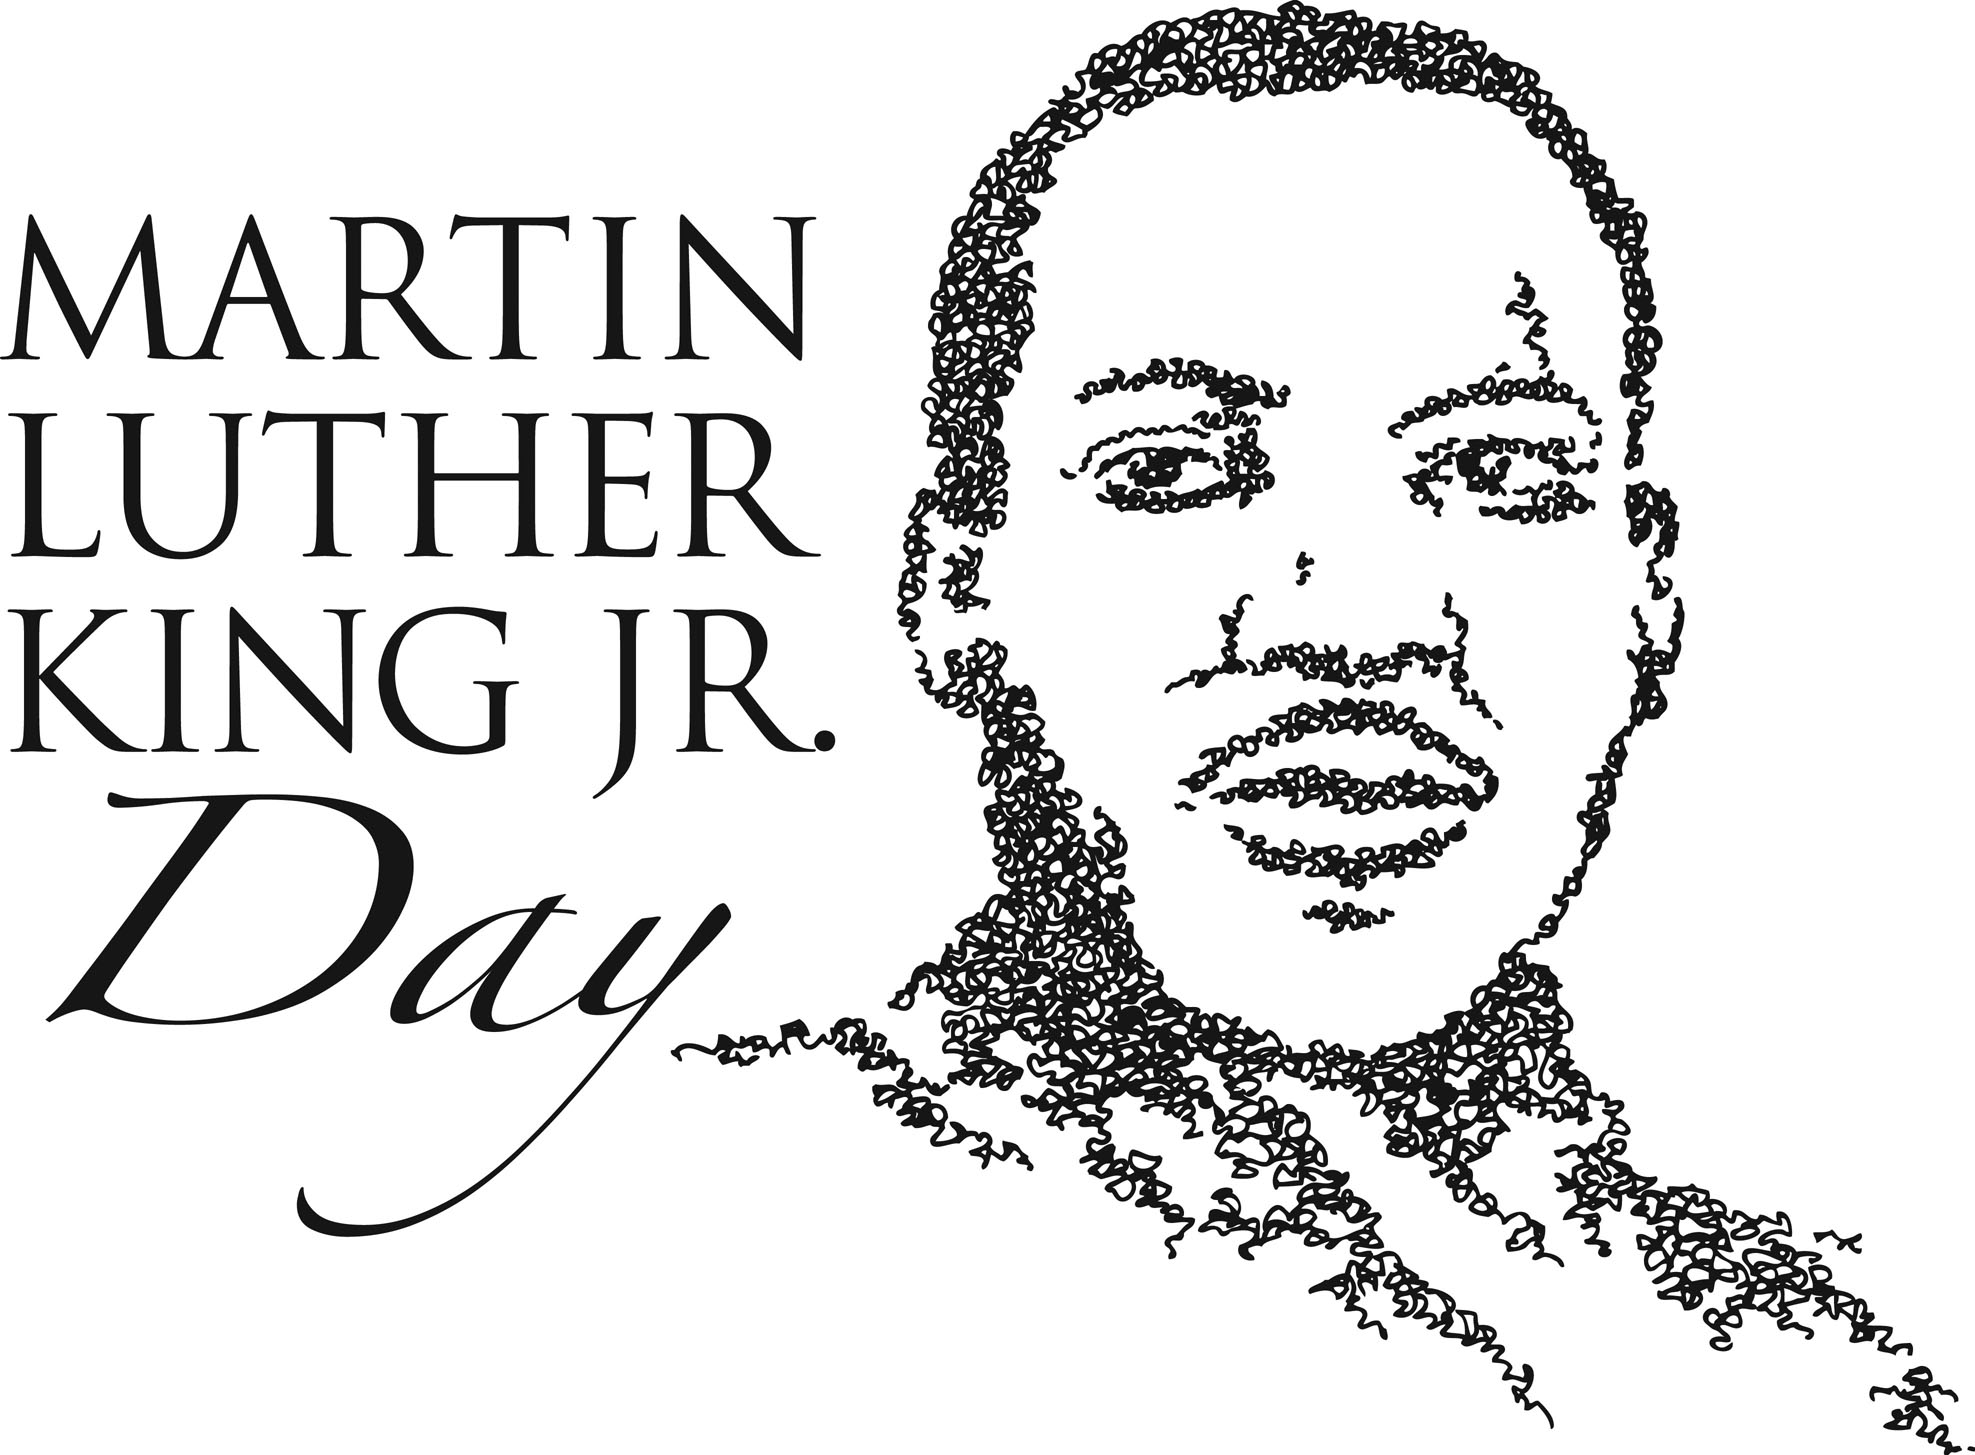 Martin luther king day clipart images - -Martin luther king day clipart images - ClipartFest-14